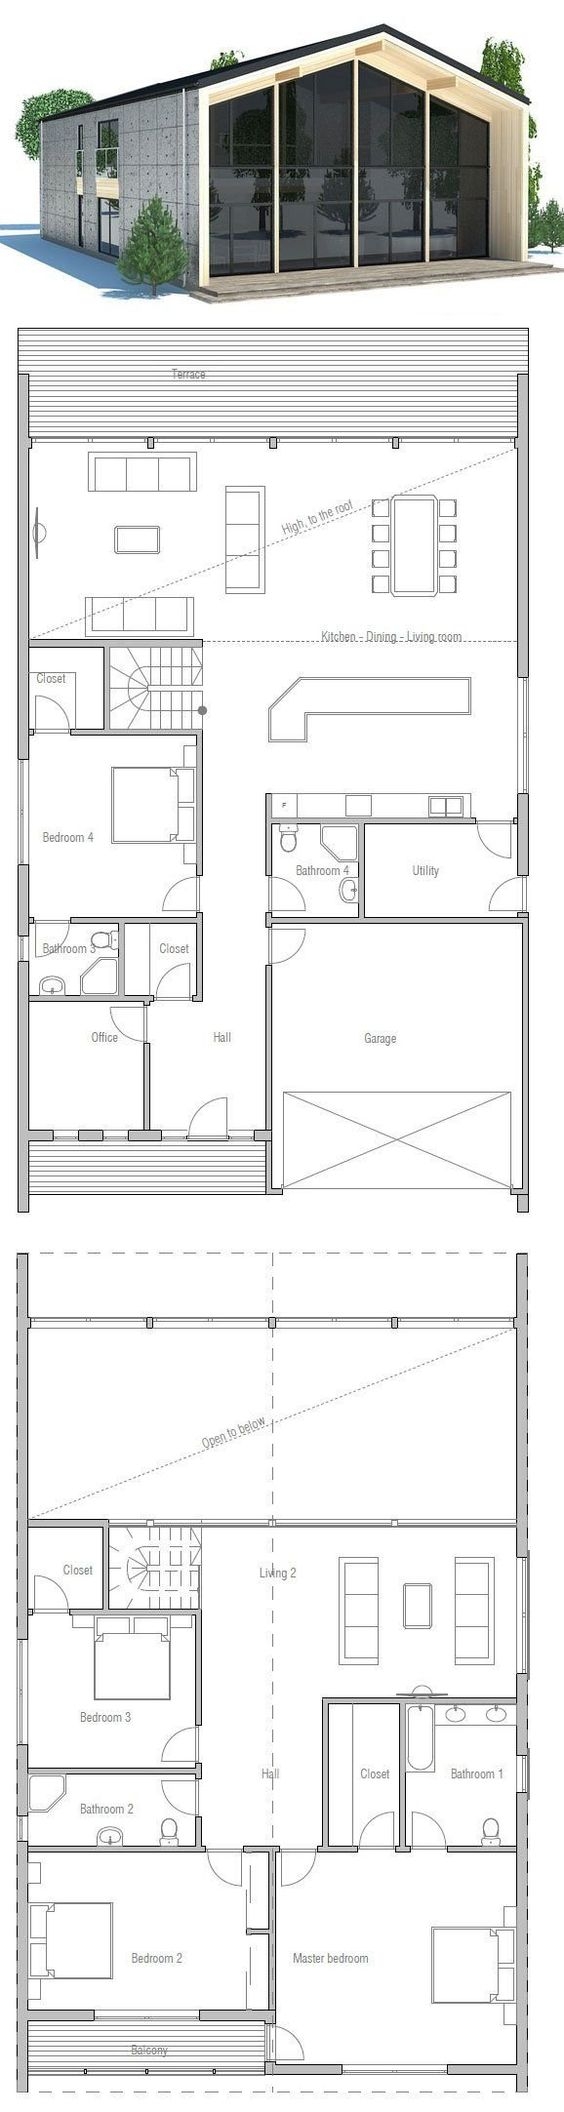 contemporry house to narrow lot modern architecture floor plan contemporry house to narrow lot modern architecture floor plan from concepthome com home pinterest modern architecture architecture and modern